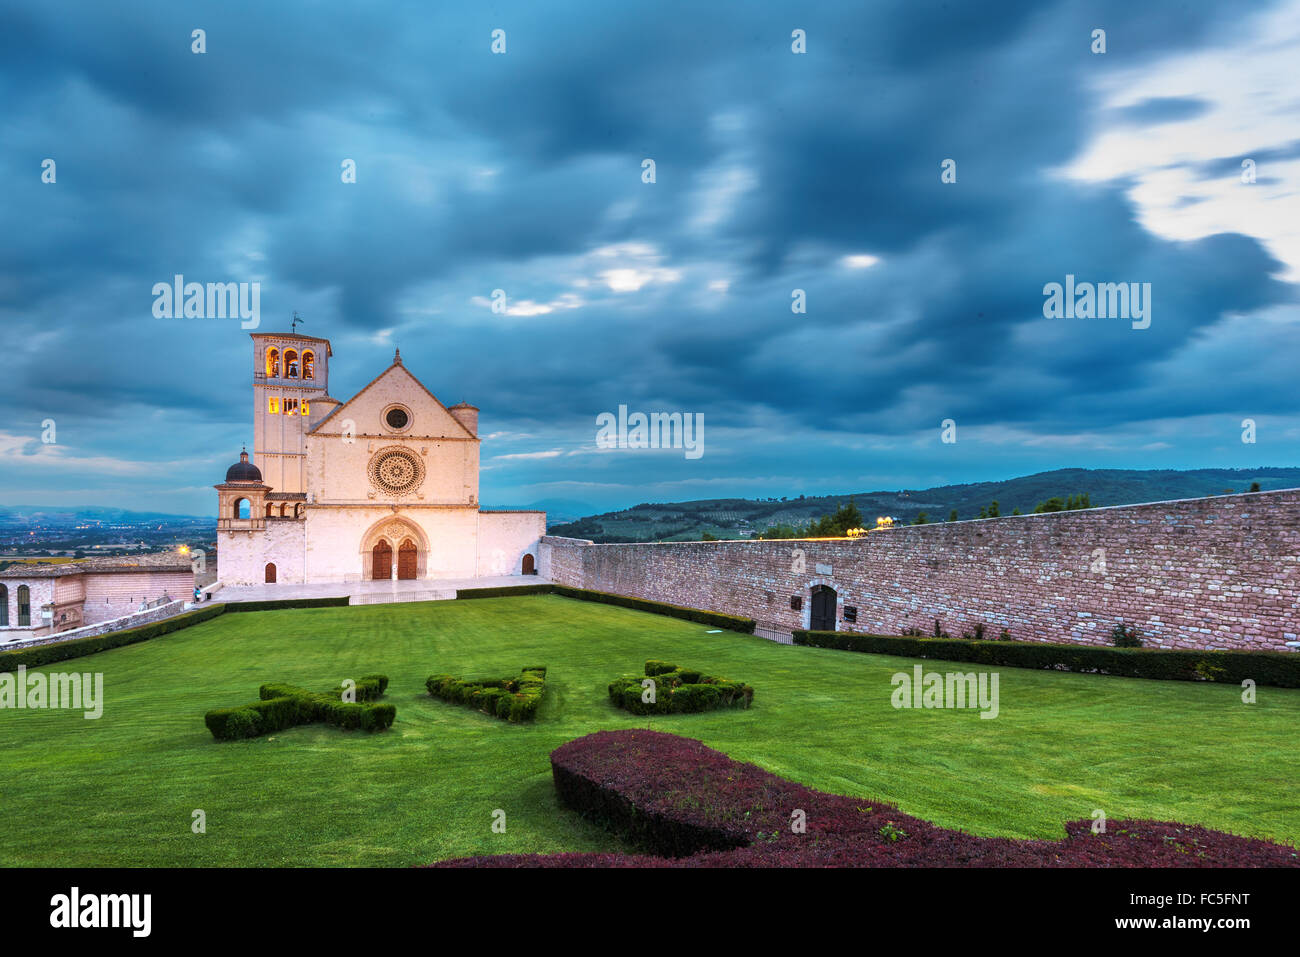 Basilica of St. Francis of Assisi in Umbria, Italy - Stock Image